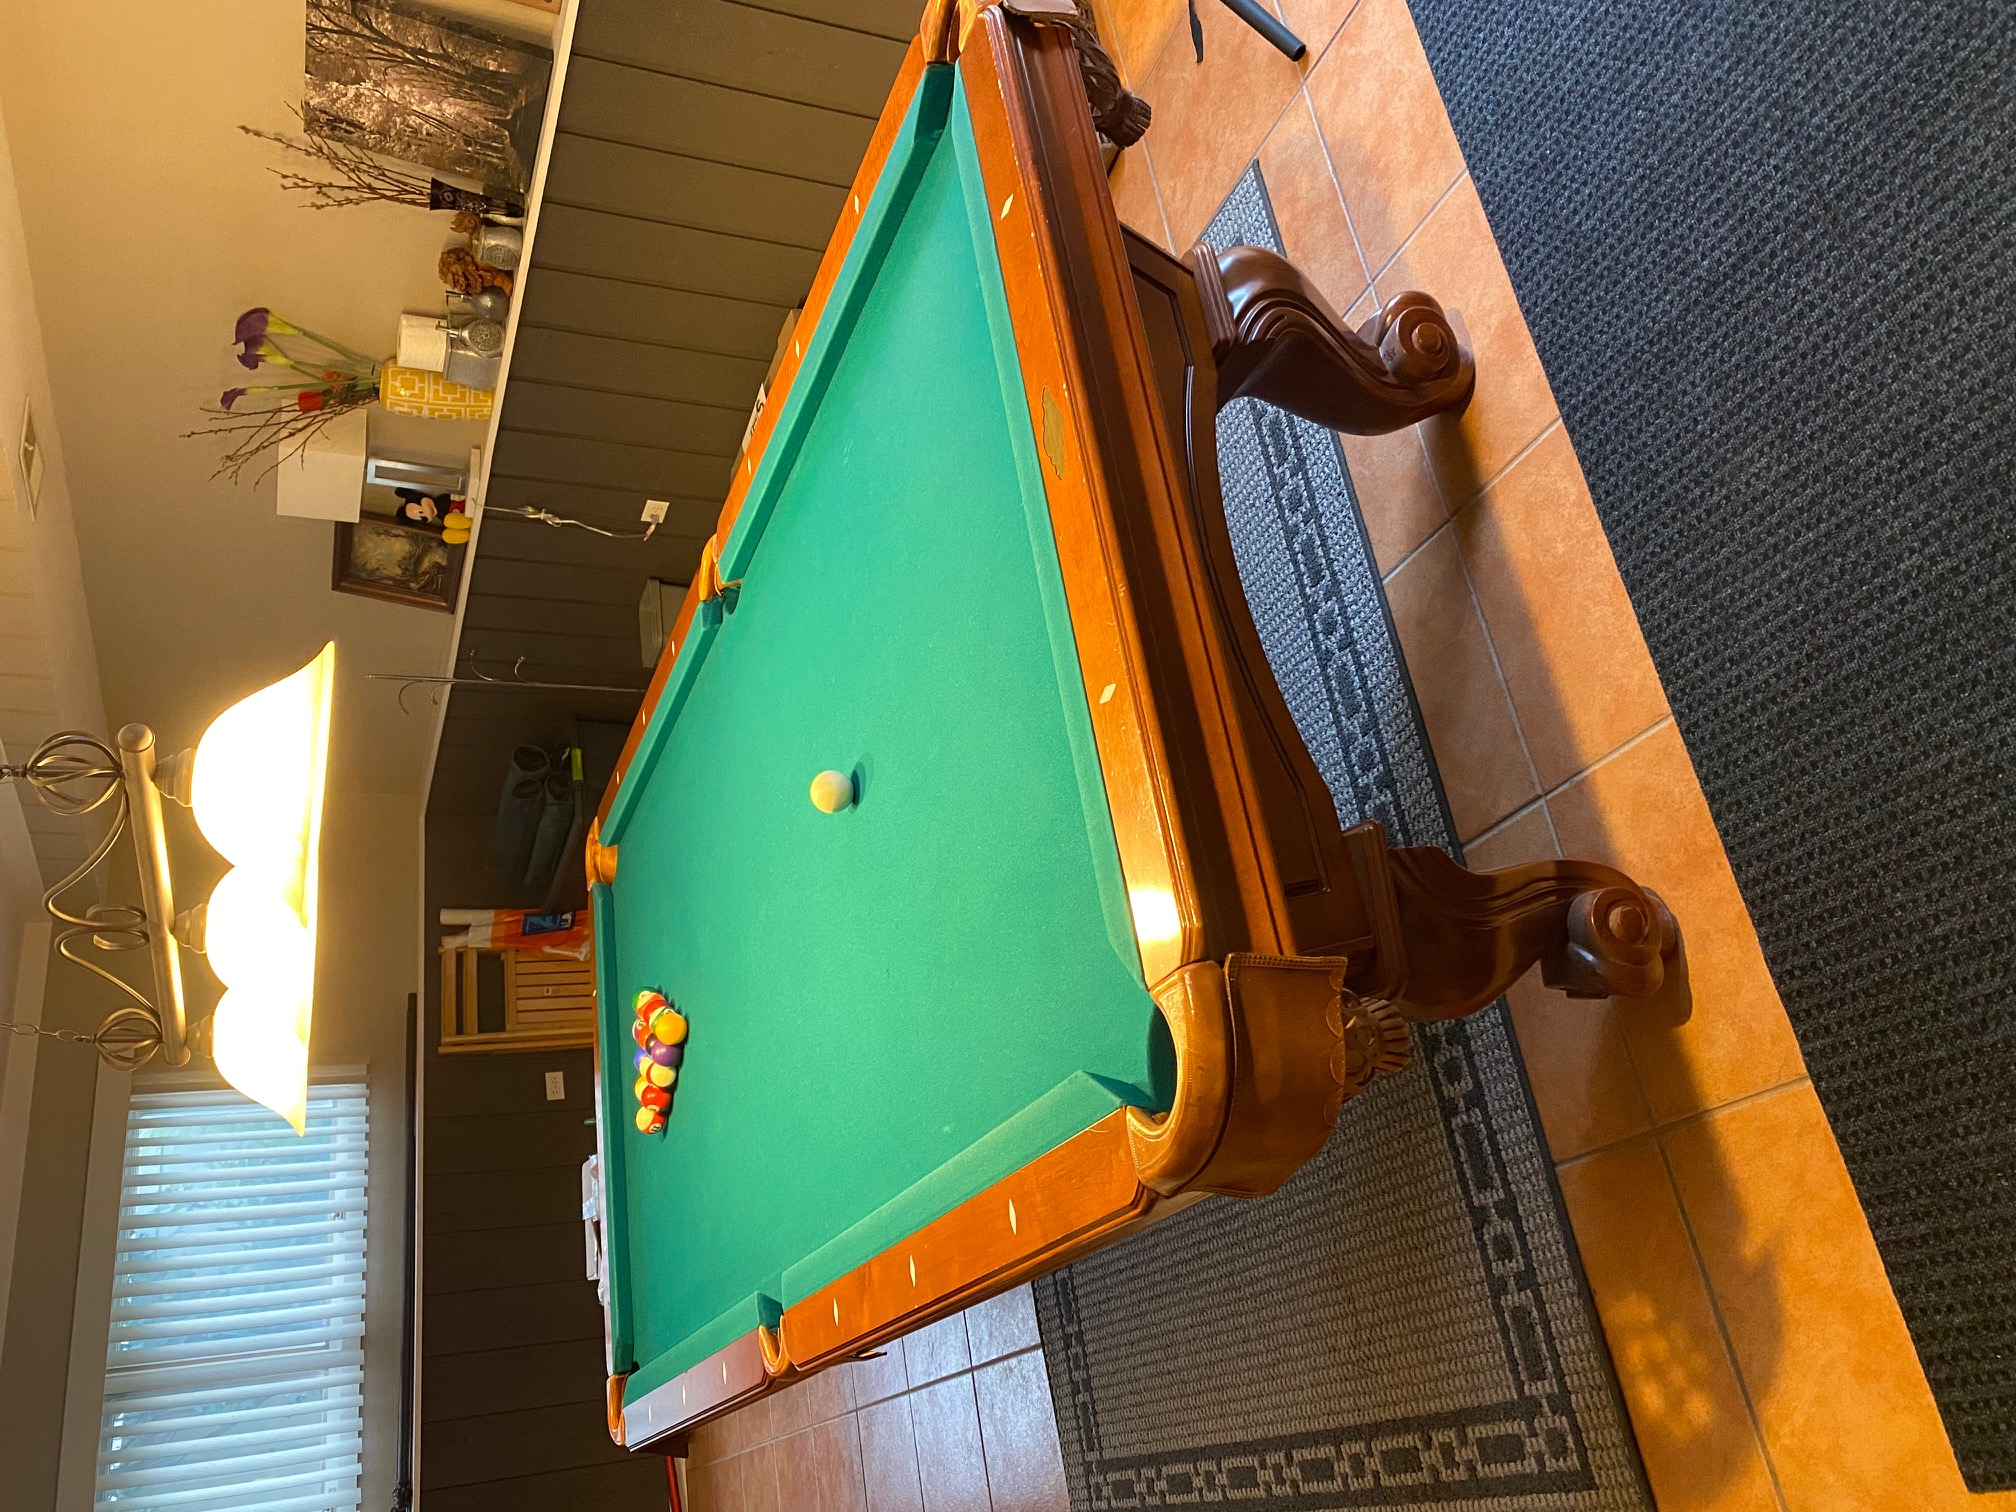 imperial-billiards-lincoln-pool-table-2020.jpeg